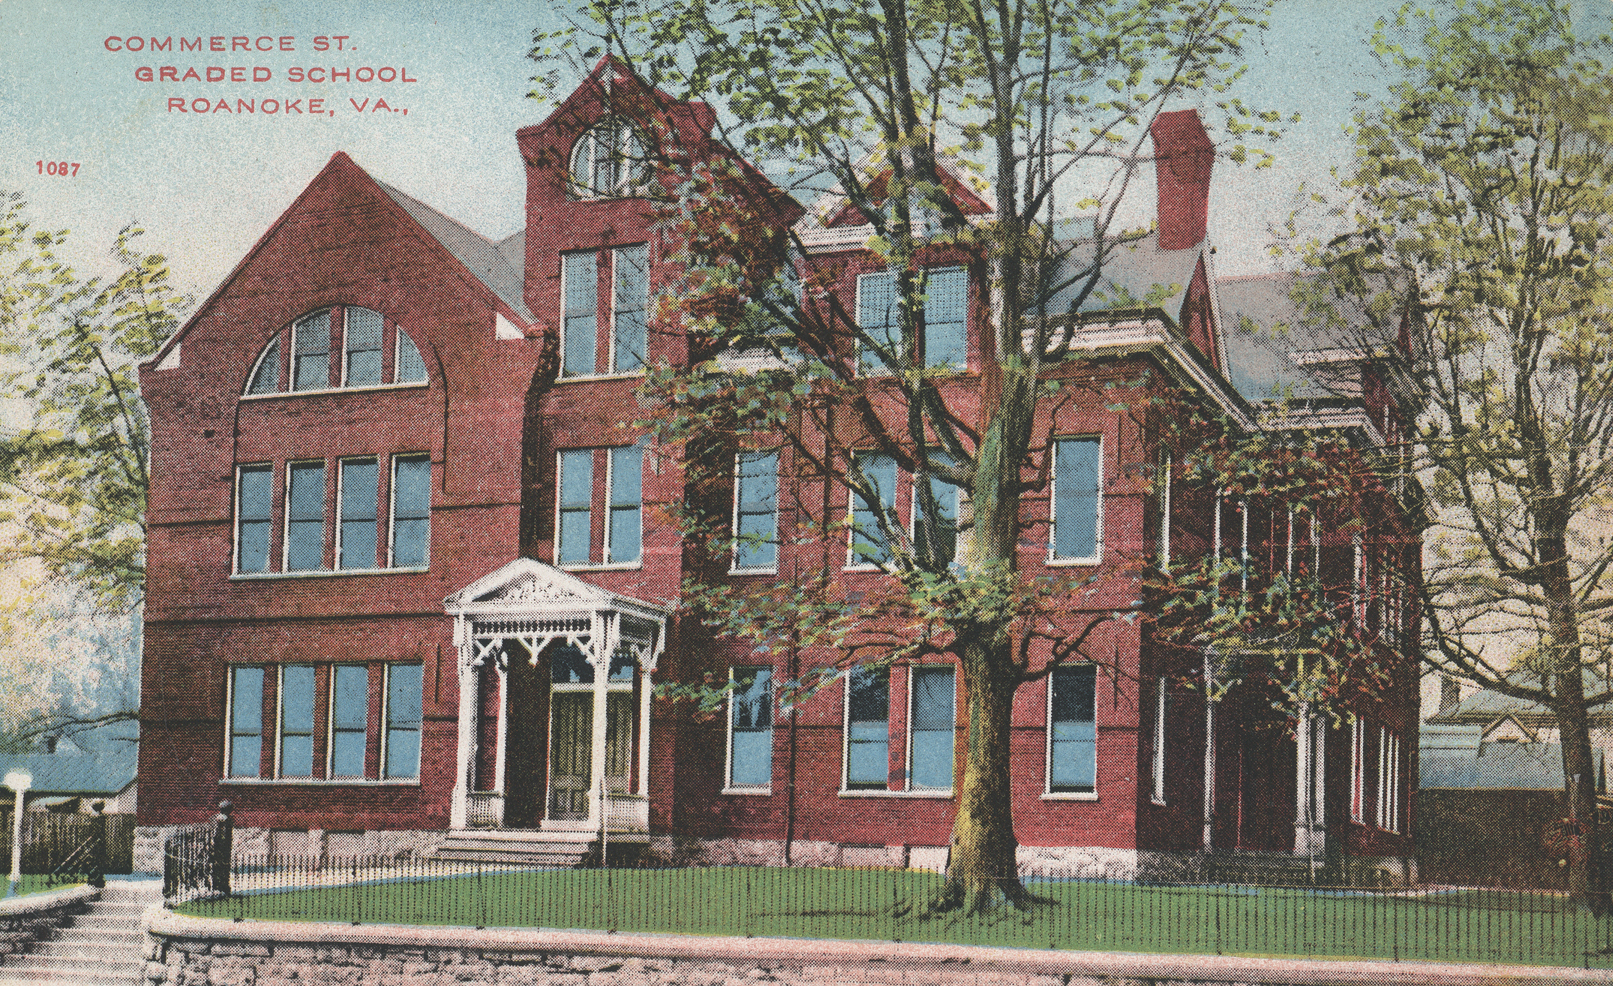 PC 127.1 Commerce Street School.jpg